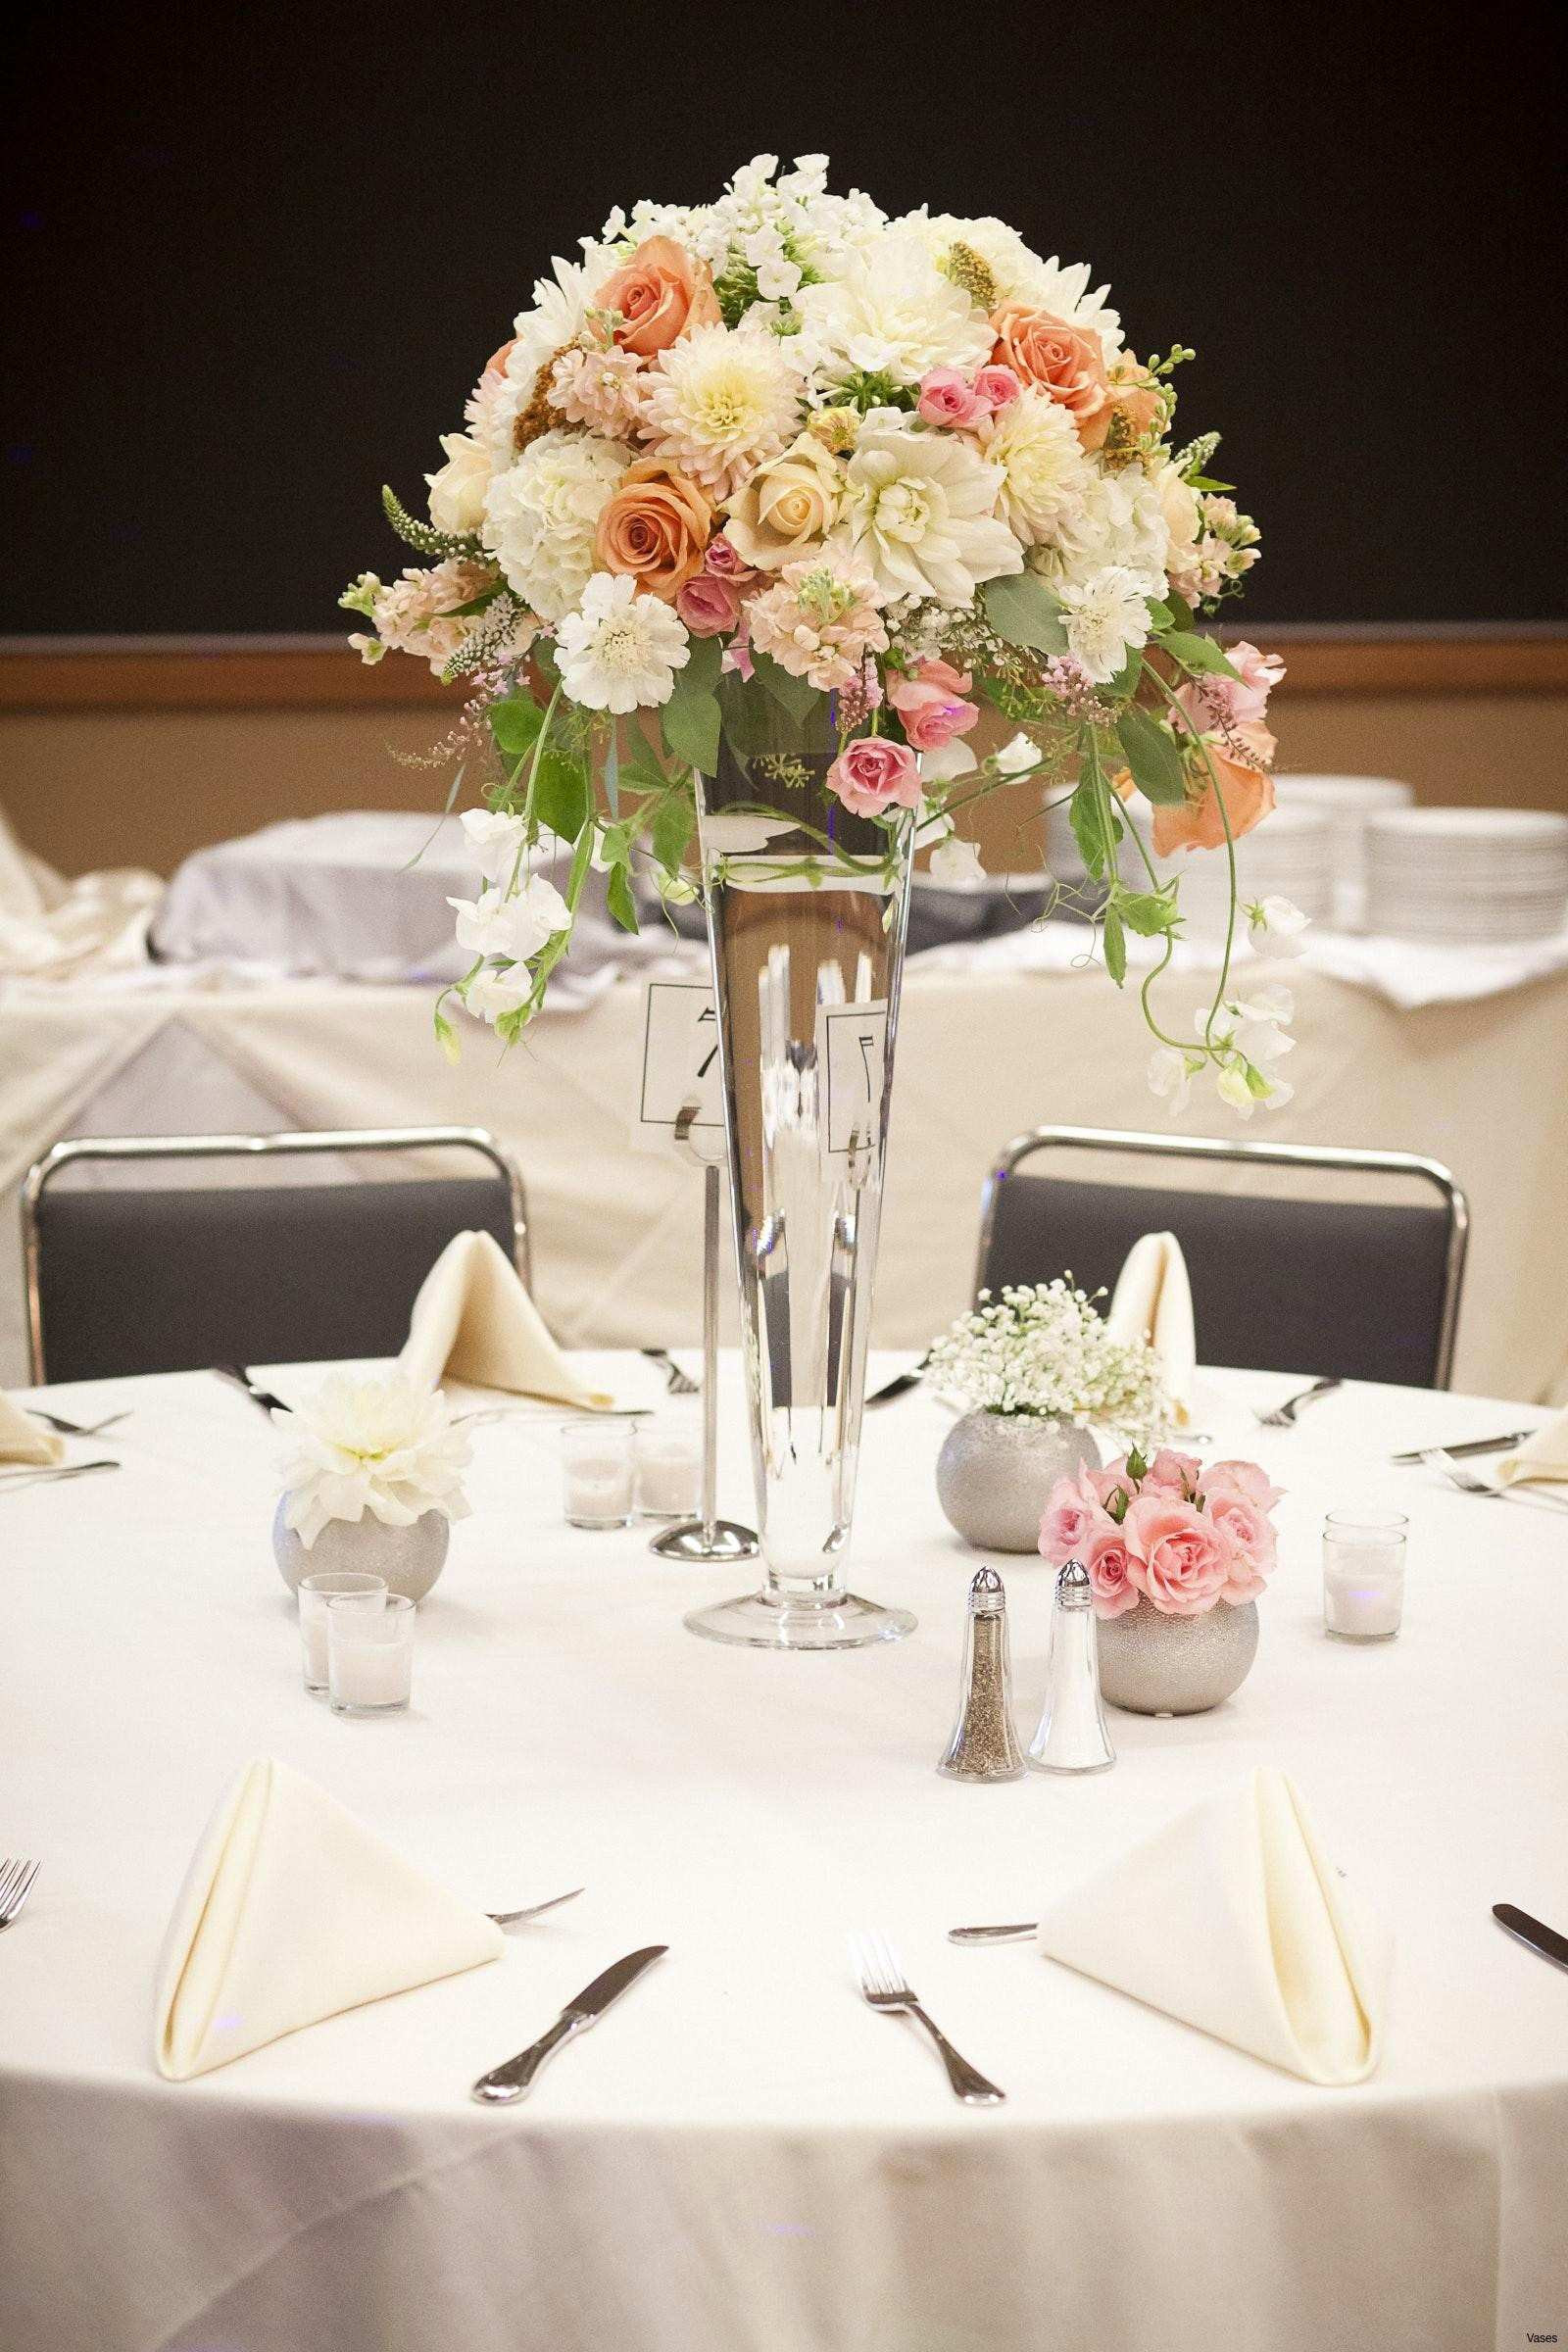 tall silver vase of dining room centrepiece ideas new dining table flower arrangements for dining room centrepiece ideas inspirational living room vases wedding inspirational h vases candy vase i 0d